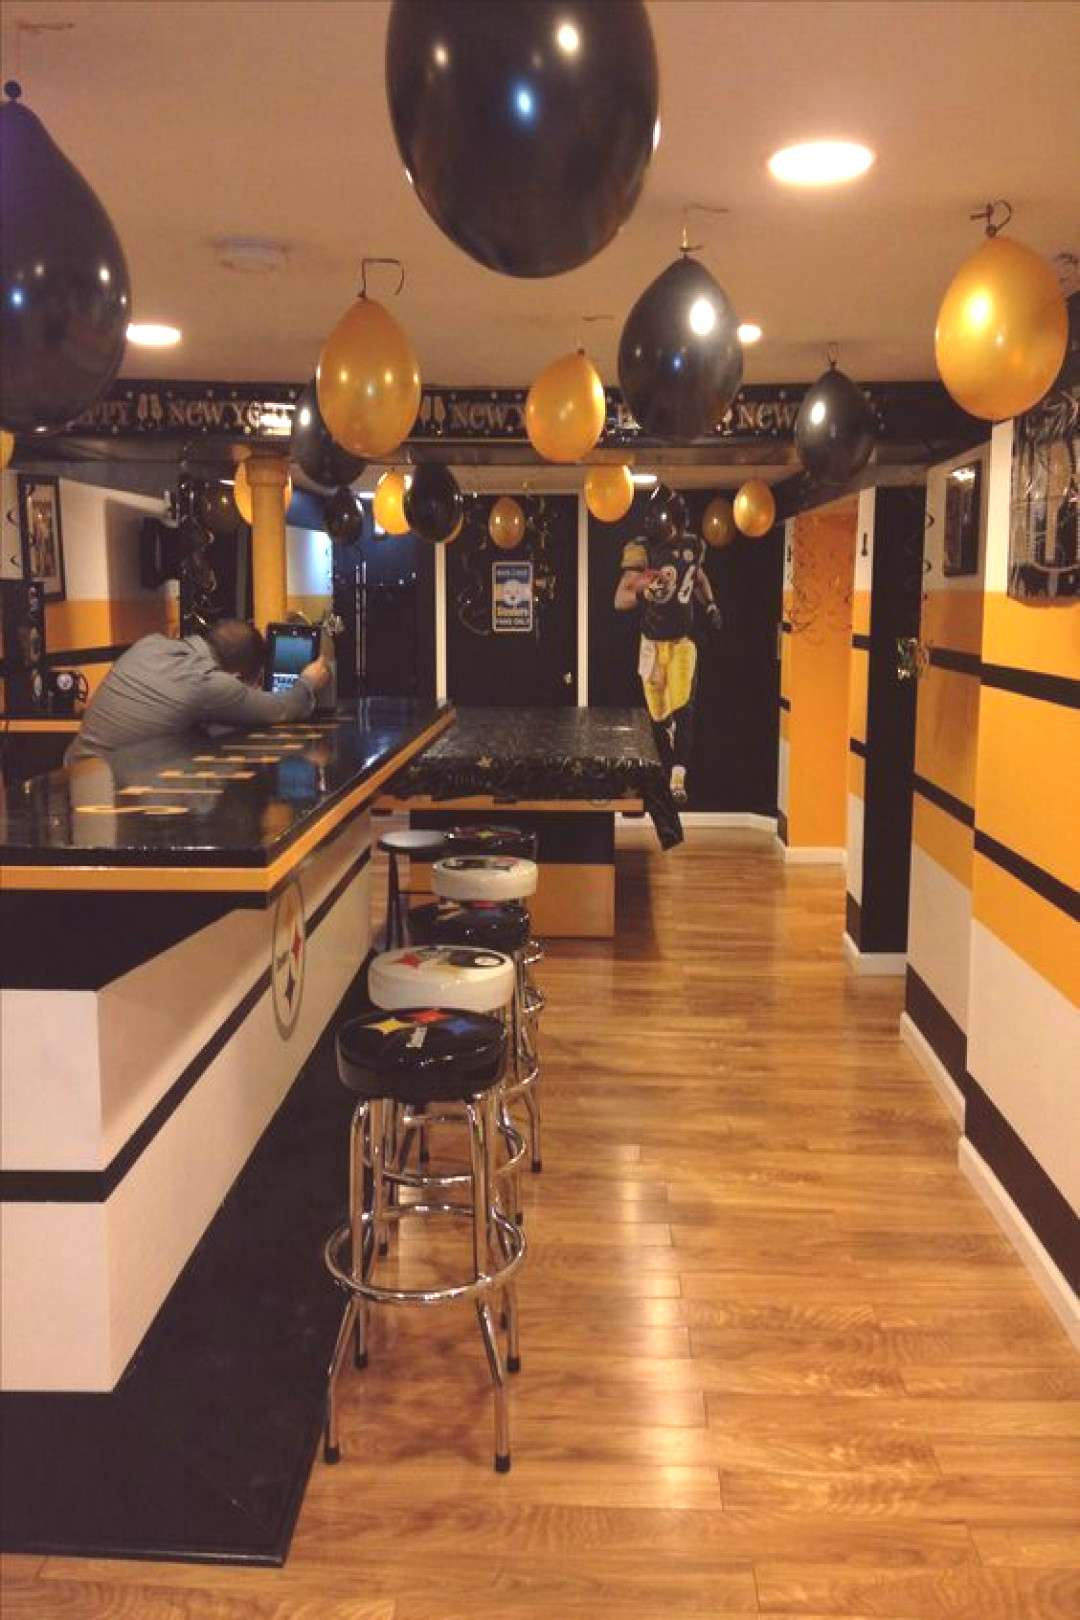 Pittsburgh Steelers Man Cave Supplies View prices on neat gear for your Steelers man cave.